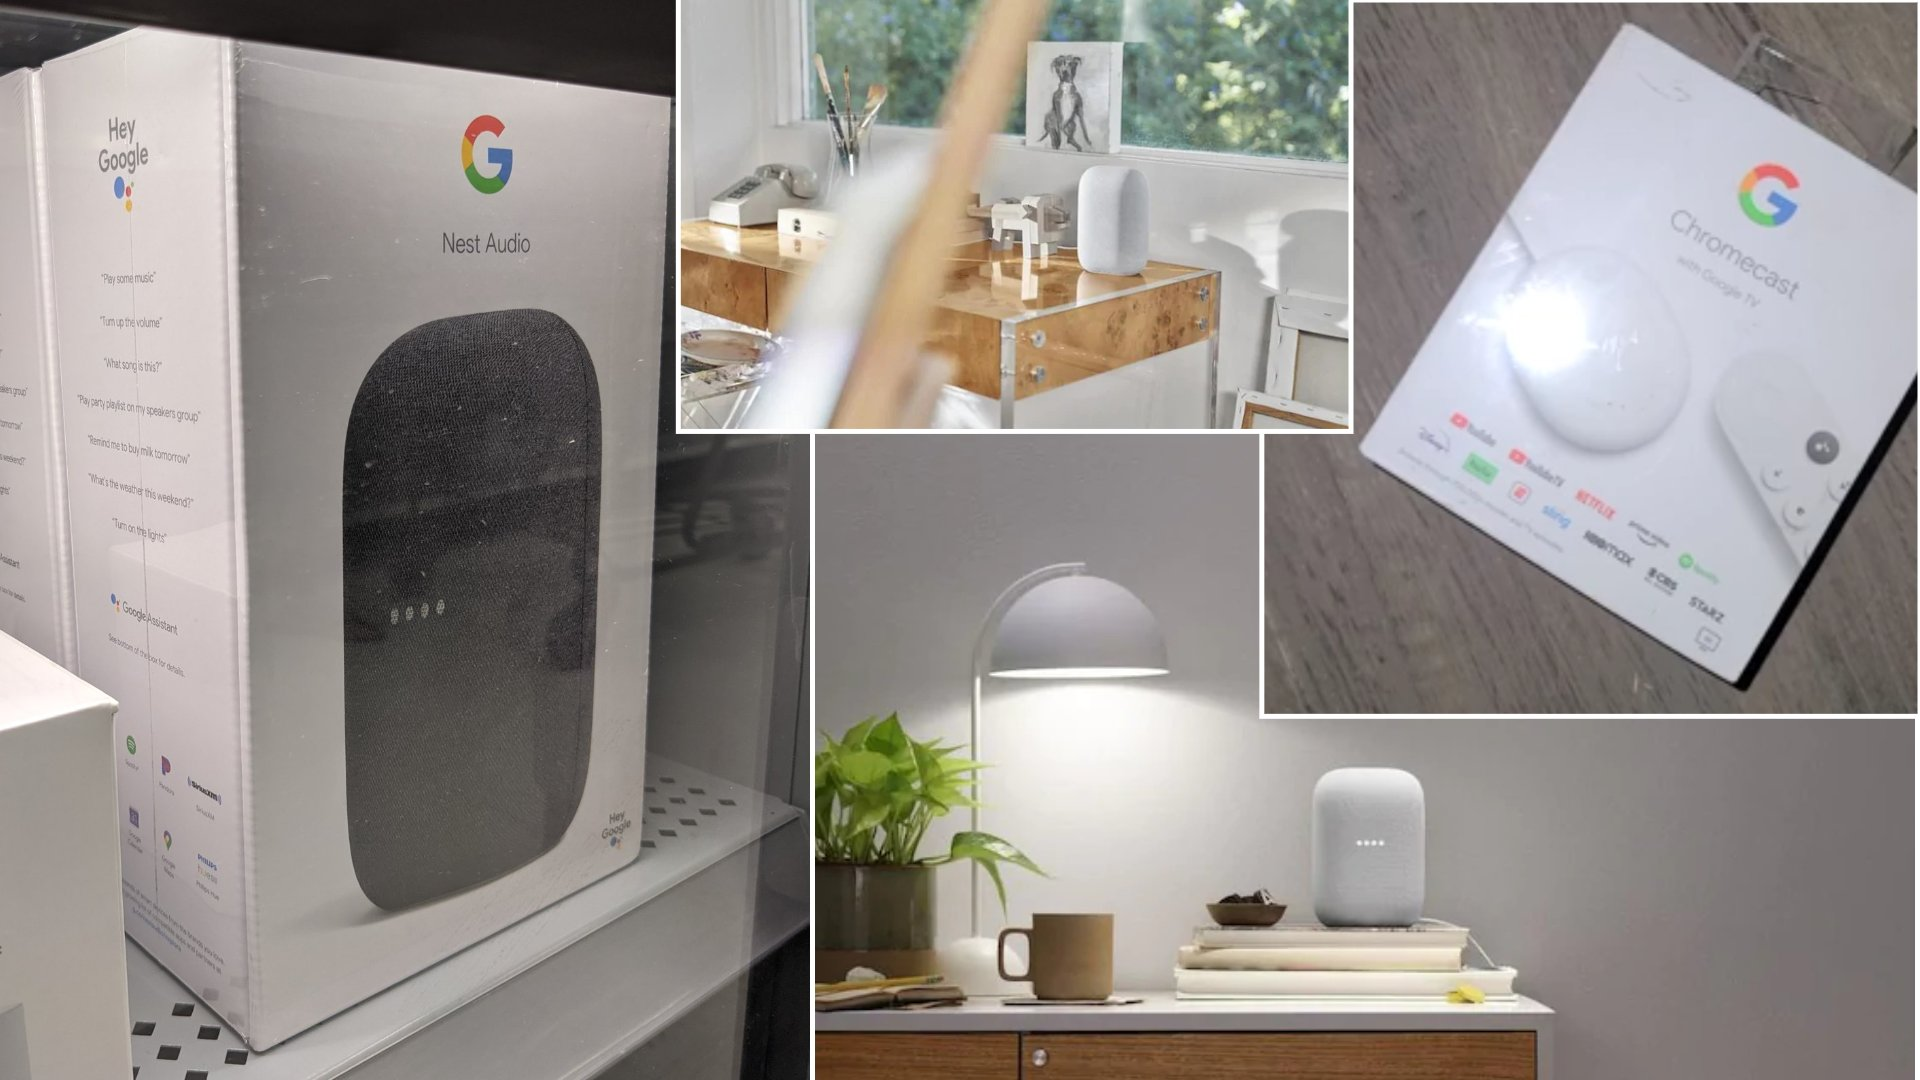 Google's new Chromecast and Nest Audio speaker are hitting store shelves early